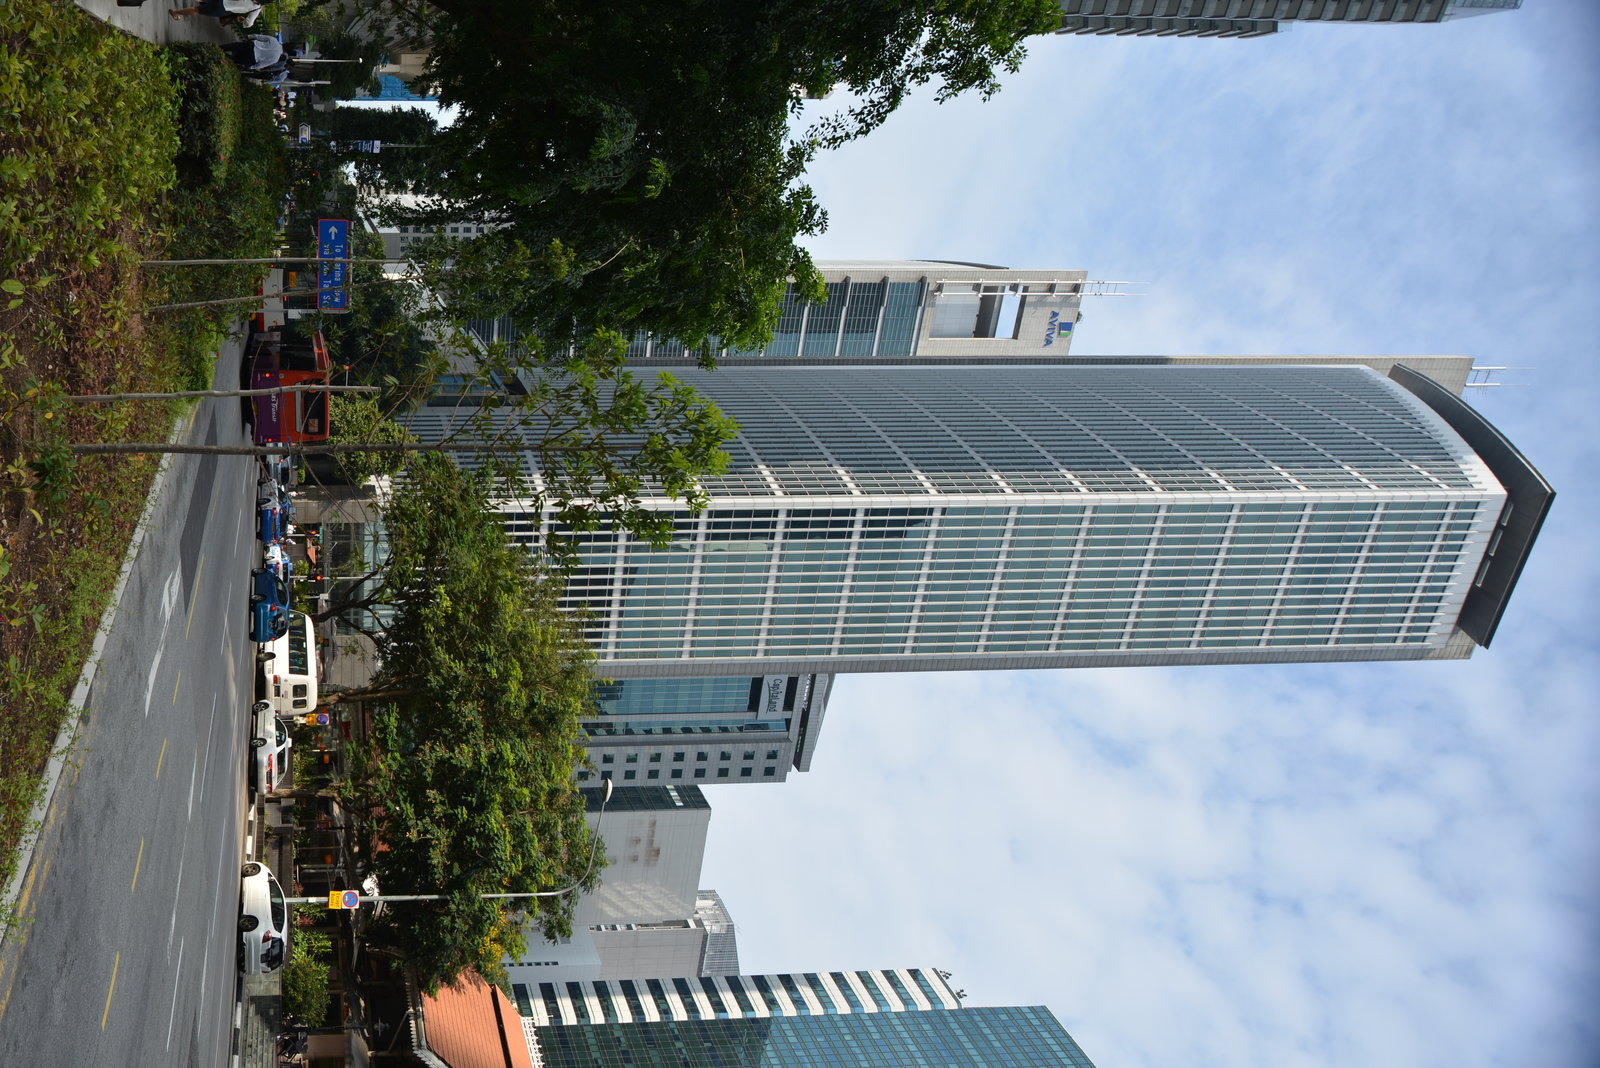 File:SGX Centre, Singapore - 20121015.jpg - Wikimedia Commons